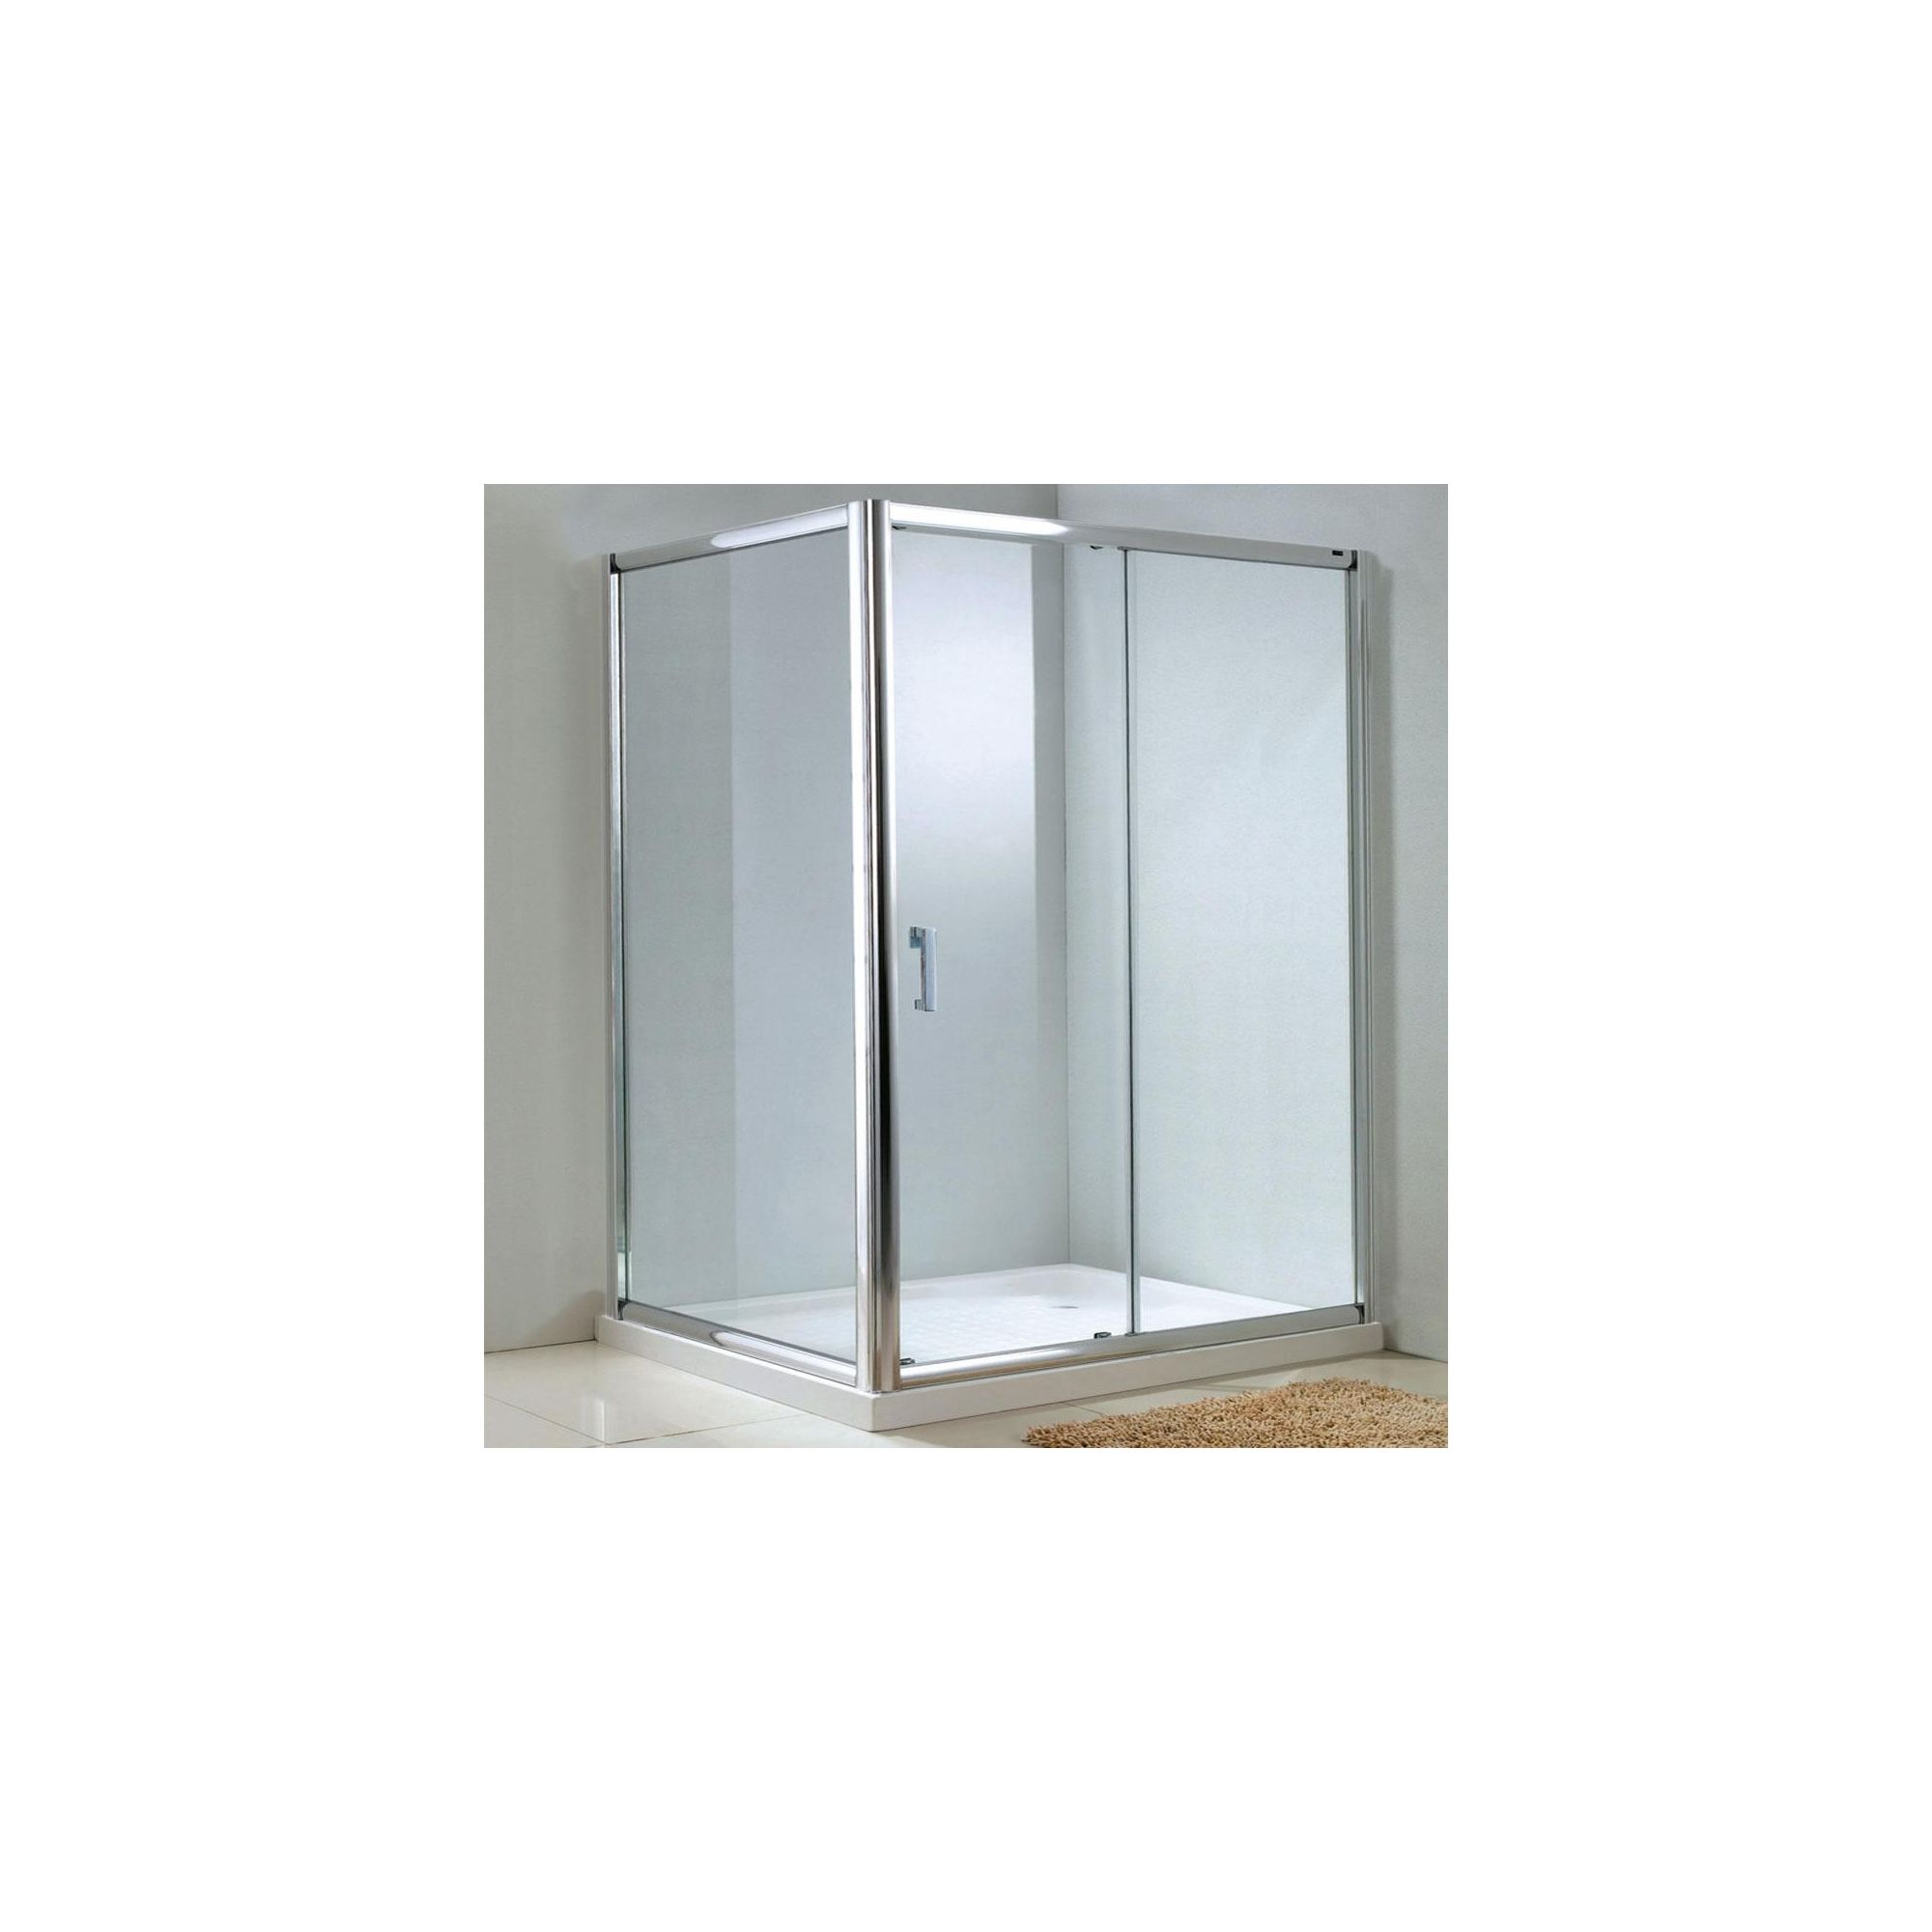 Duchy Style Single Sliding Door Shower Enclosure, 1000mm x 700mm, 6mm Glass, Low Profile Tray at Tesco Direct